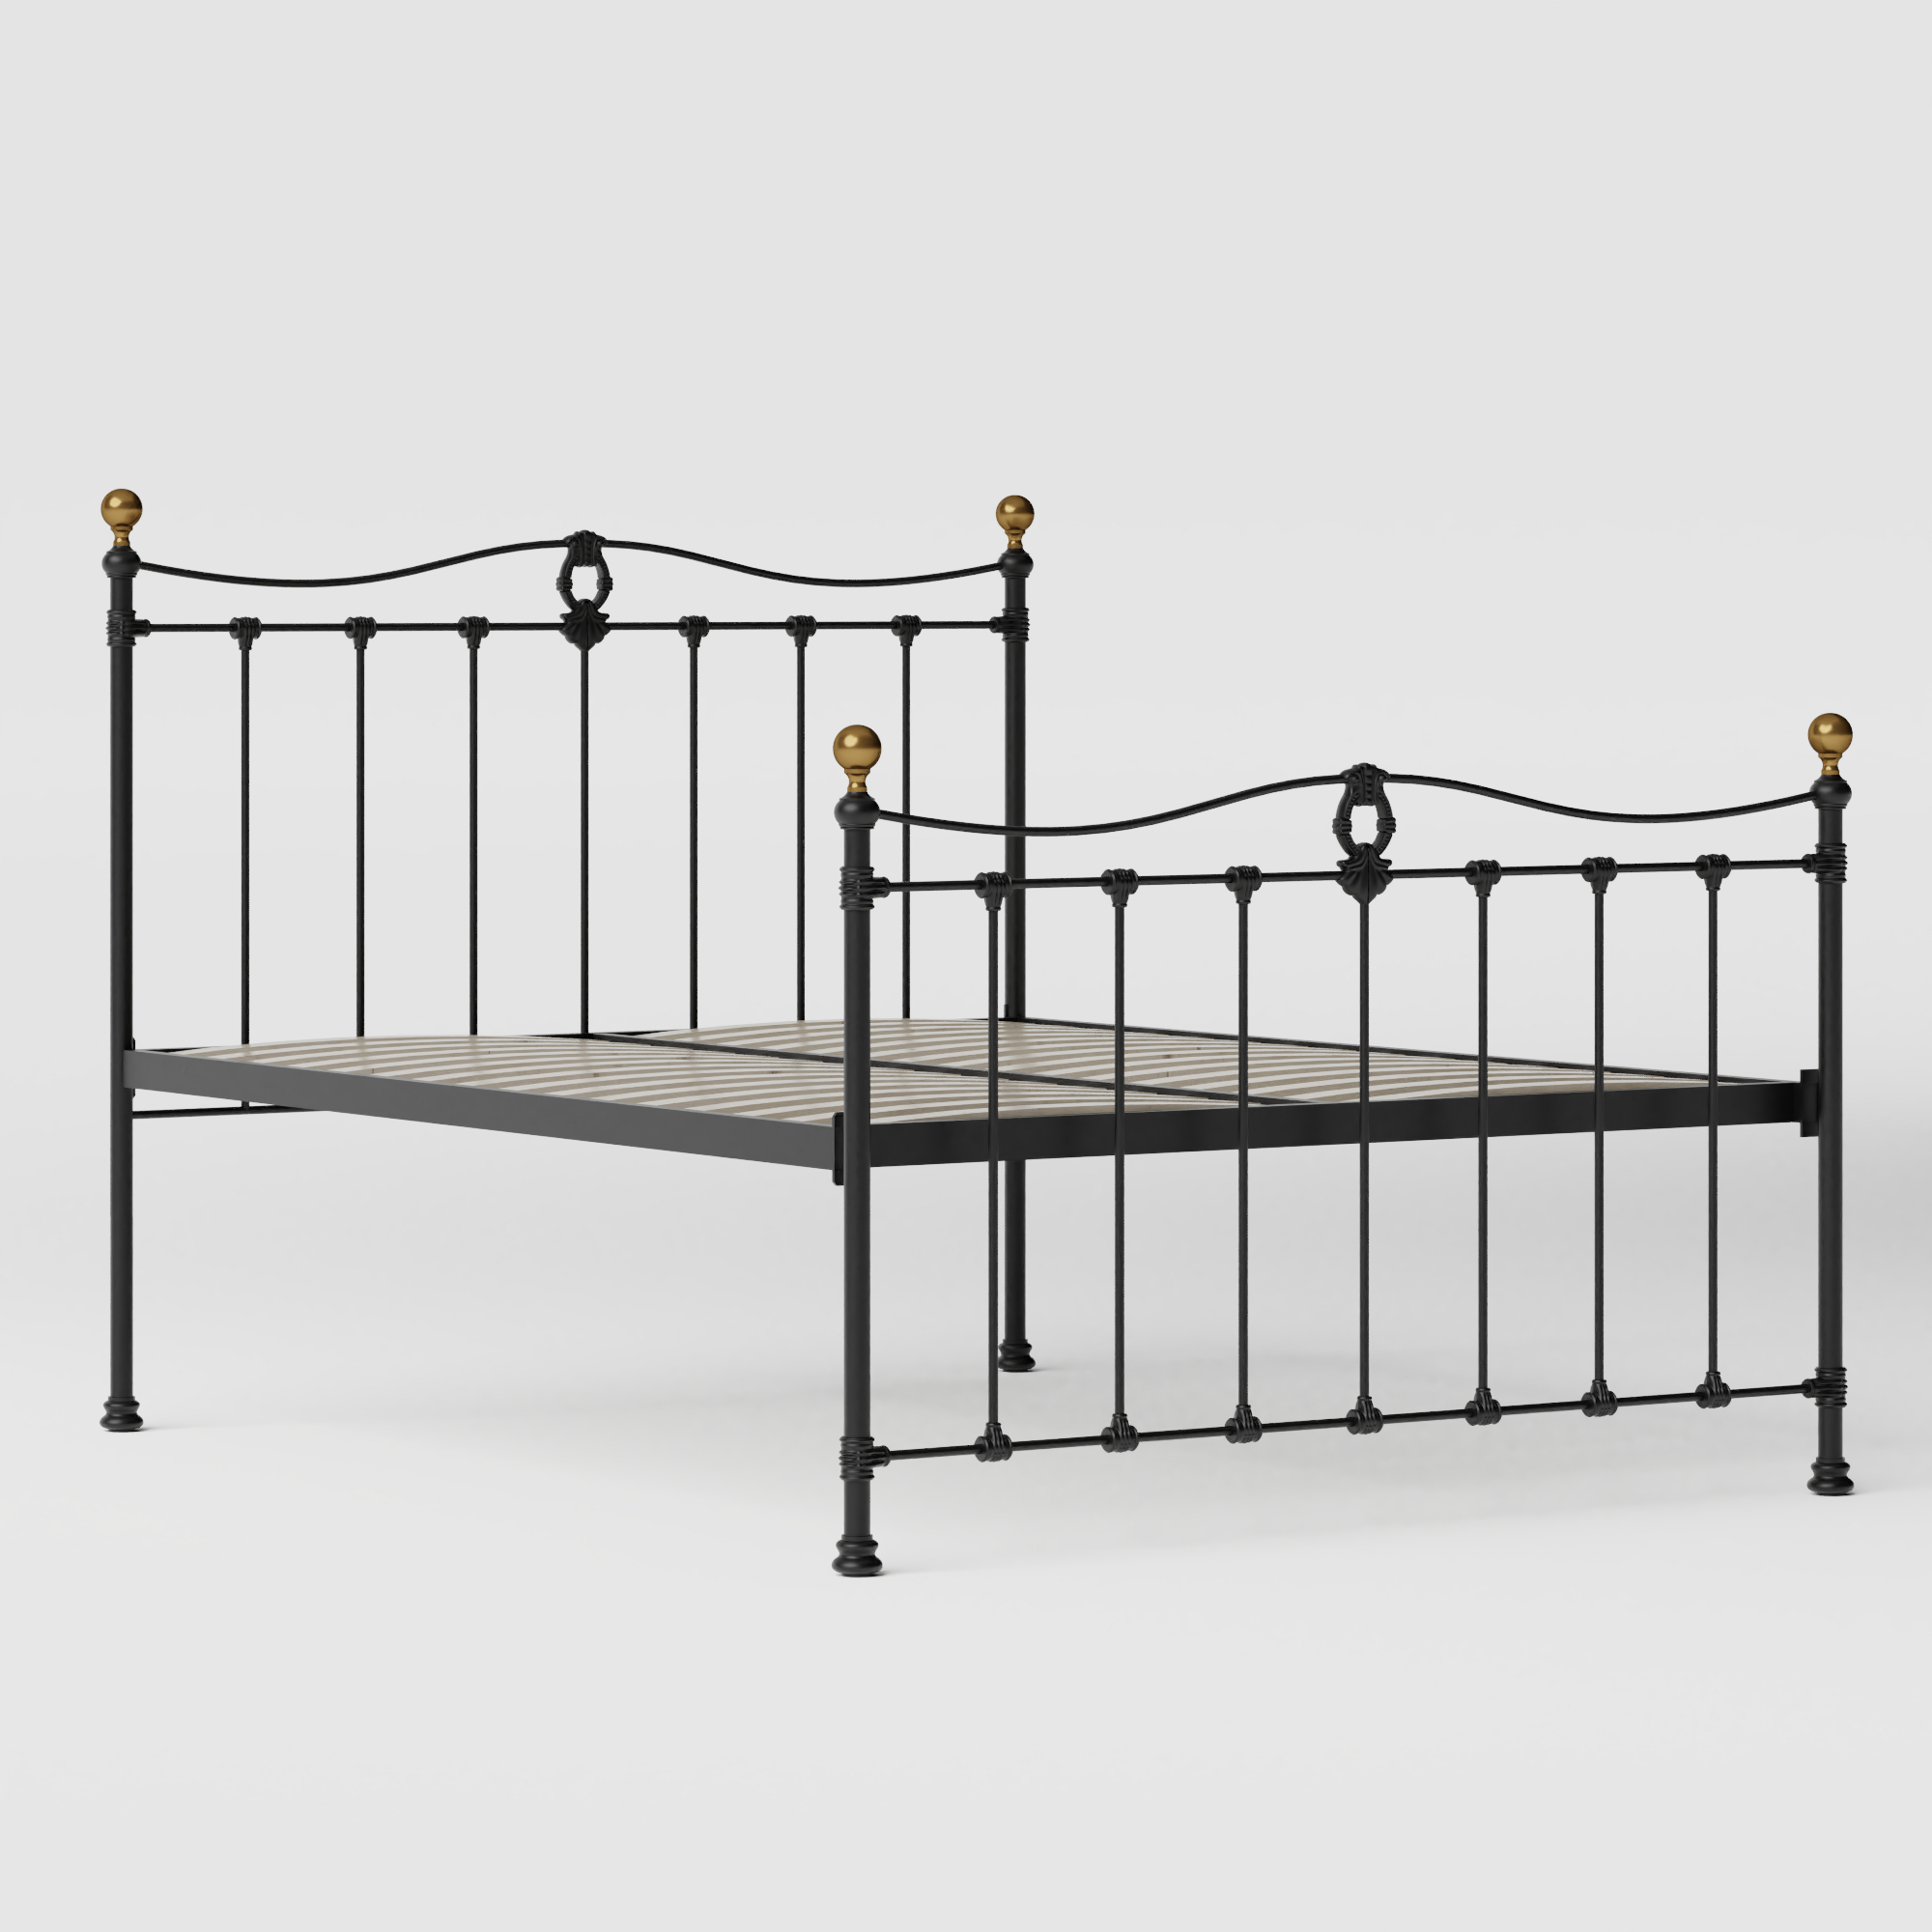 Tulsk iron/metal bed in black